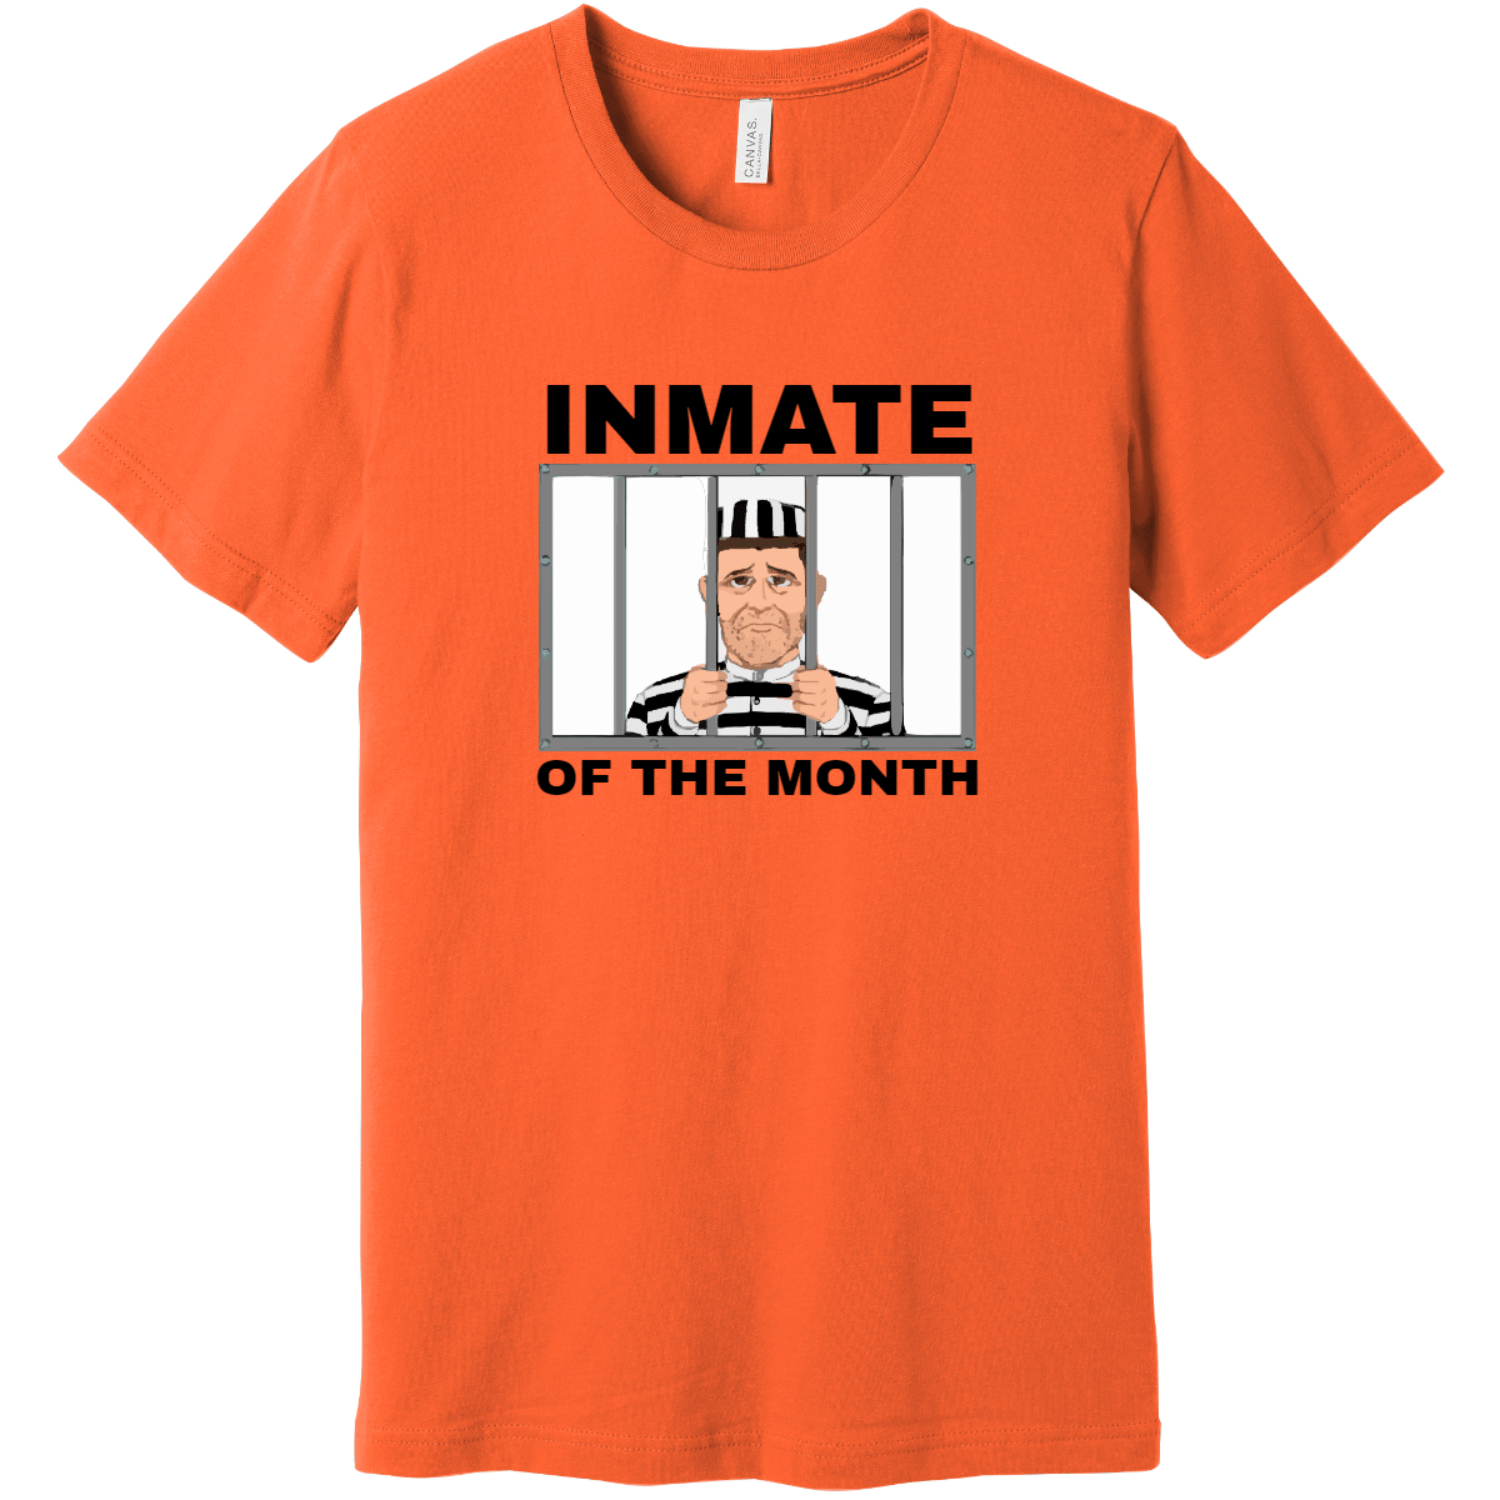 Inmate Of The Month Jail T-Shirt Orange Bella Canvas Unisex Tee BC3001